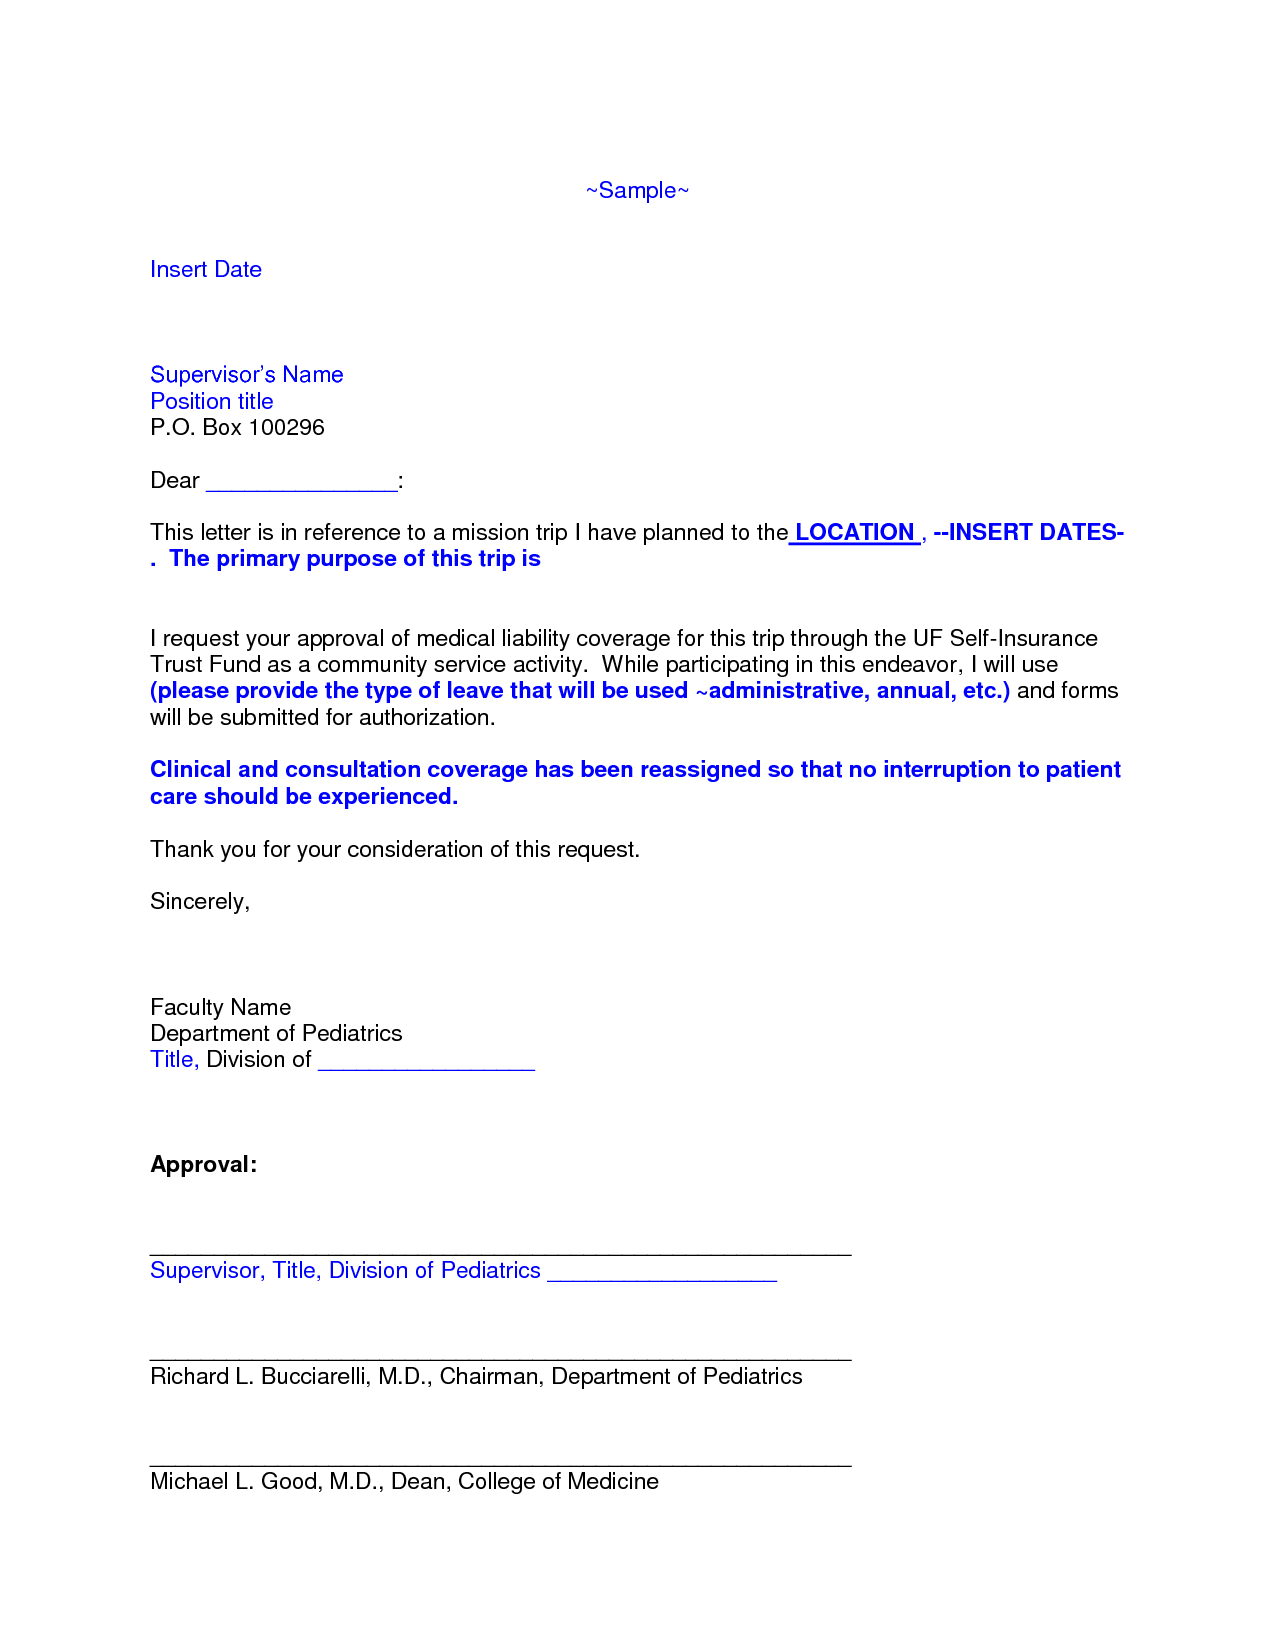 Court ordered Community Service Letter Template - How to Write Munity Service Letter Image Collections Letter